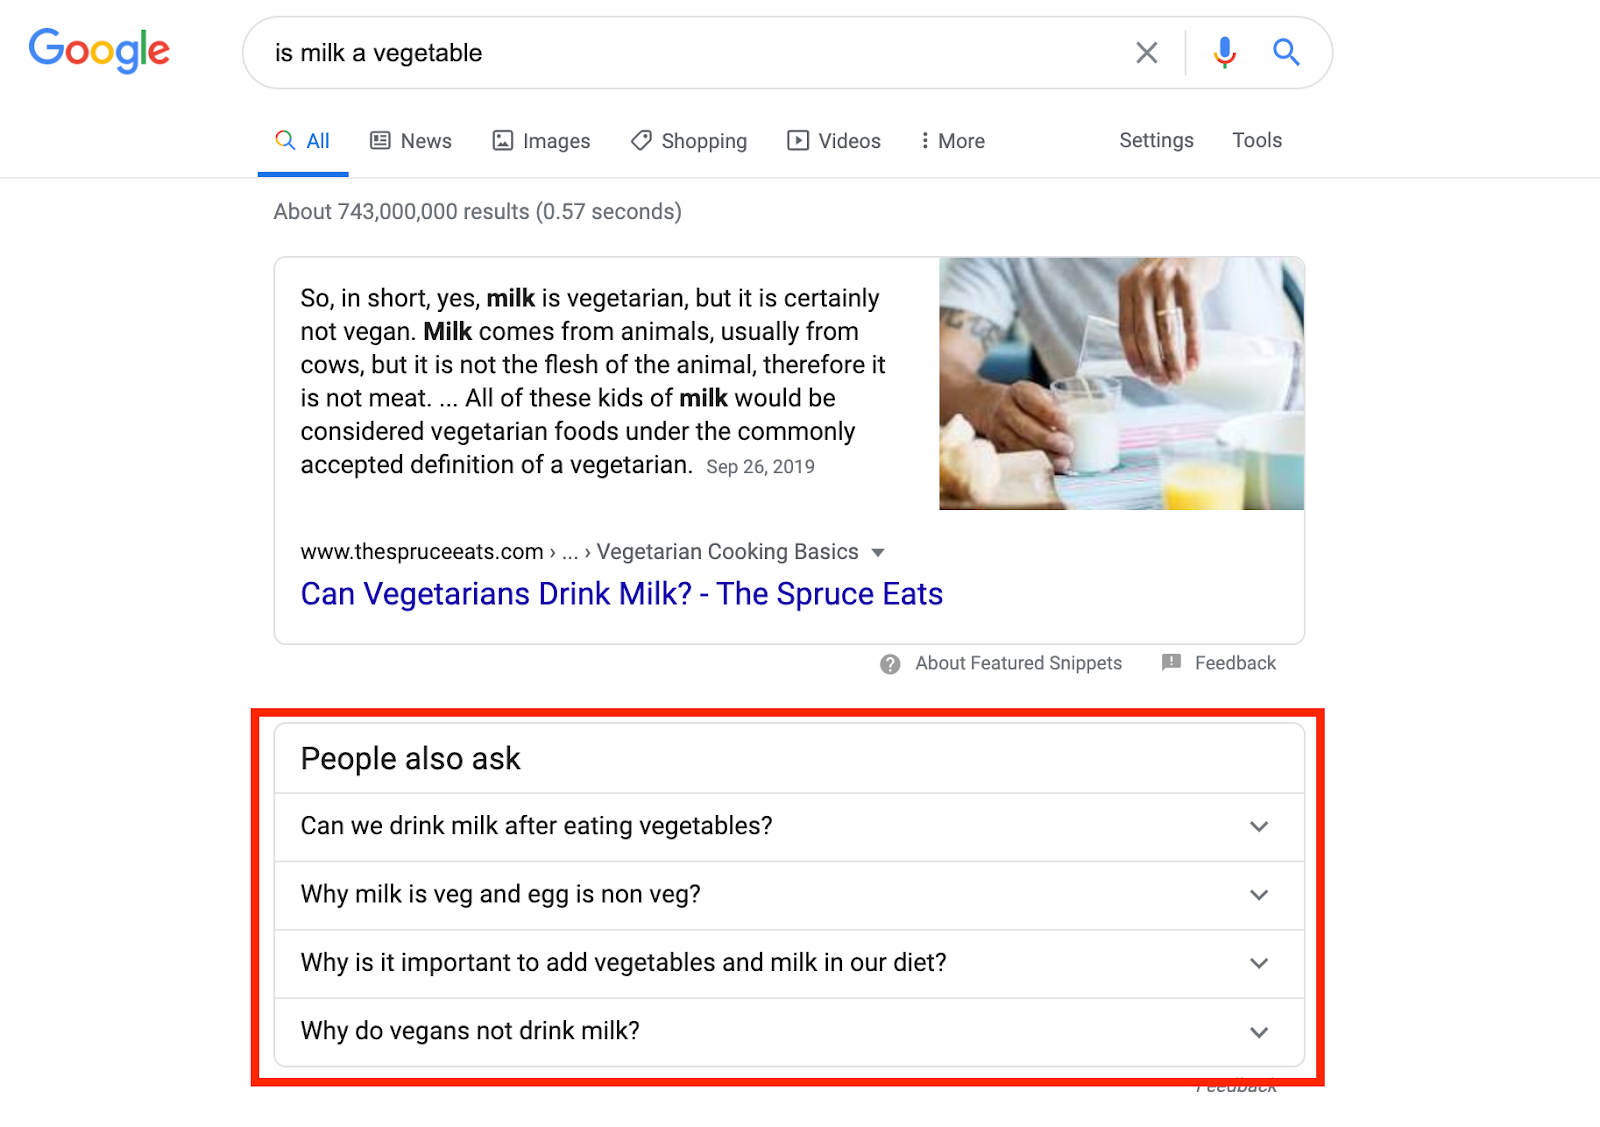 People also ask SERP feature